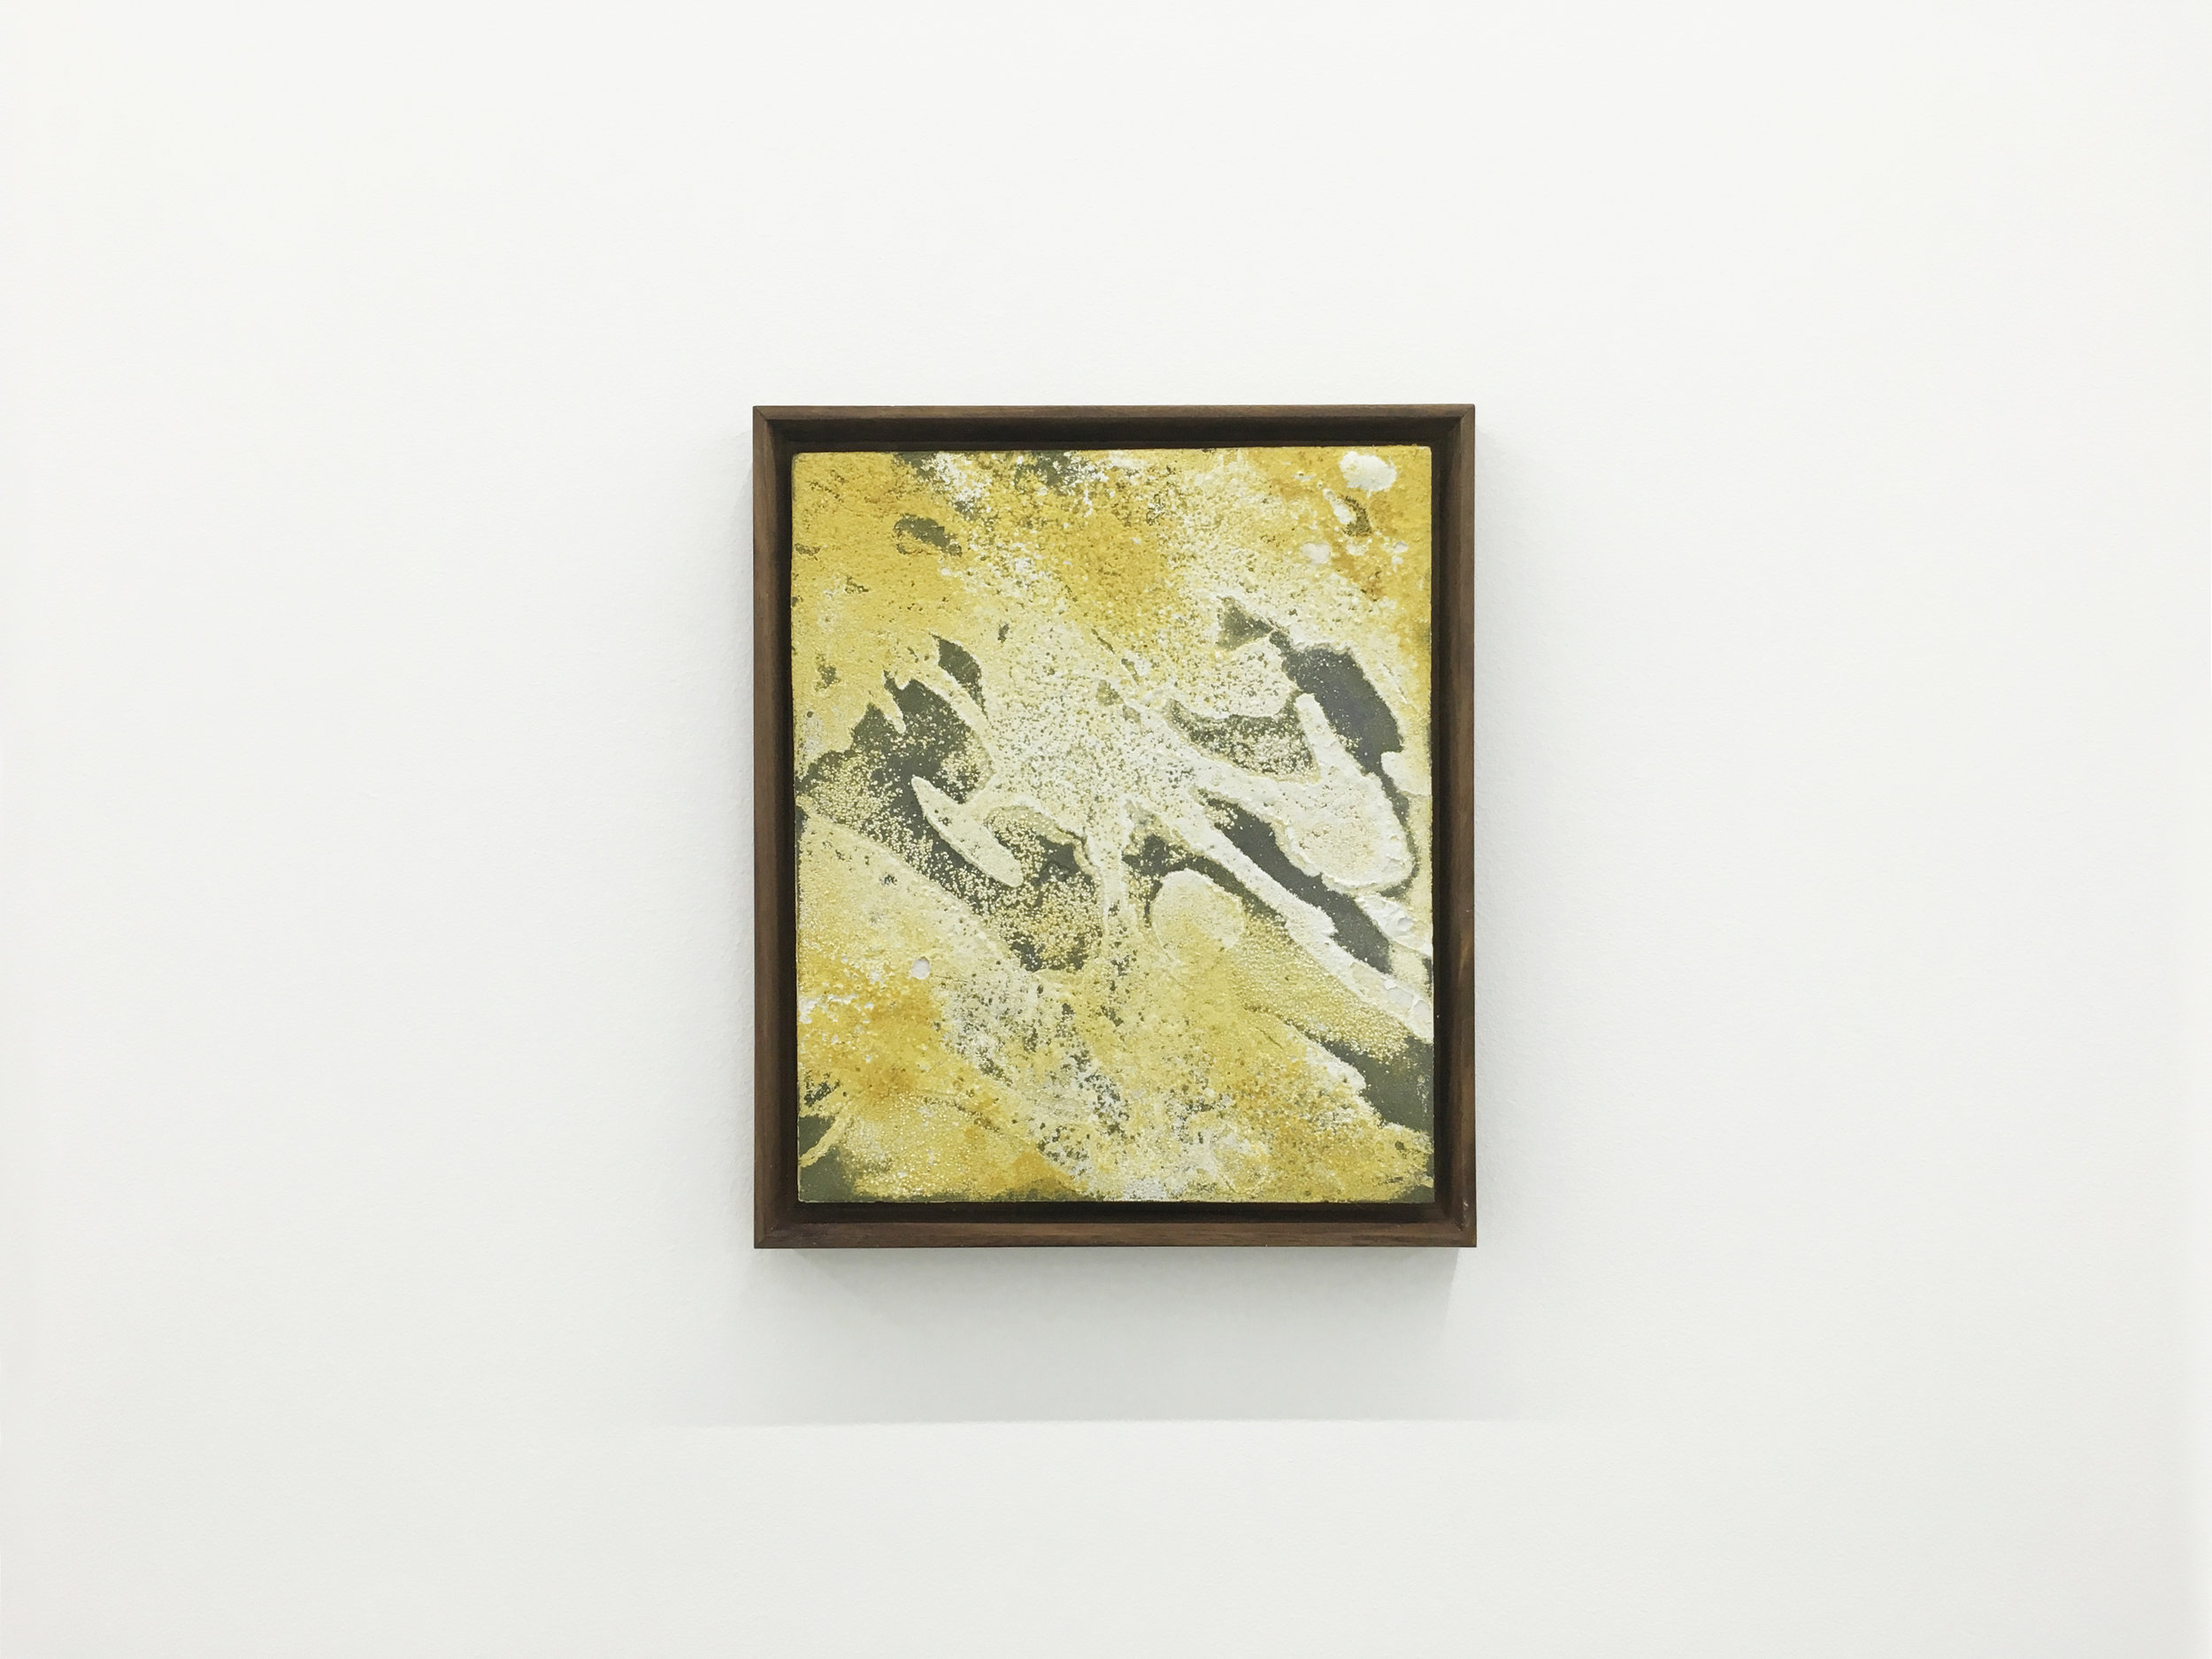 Small abstract painting made with bee pollen in a floating dark walnut frame